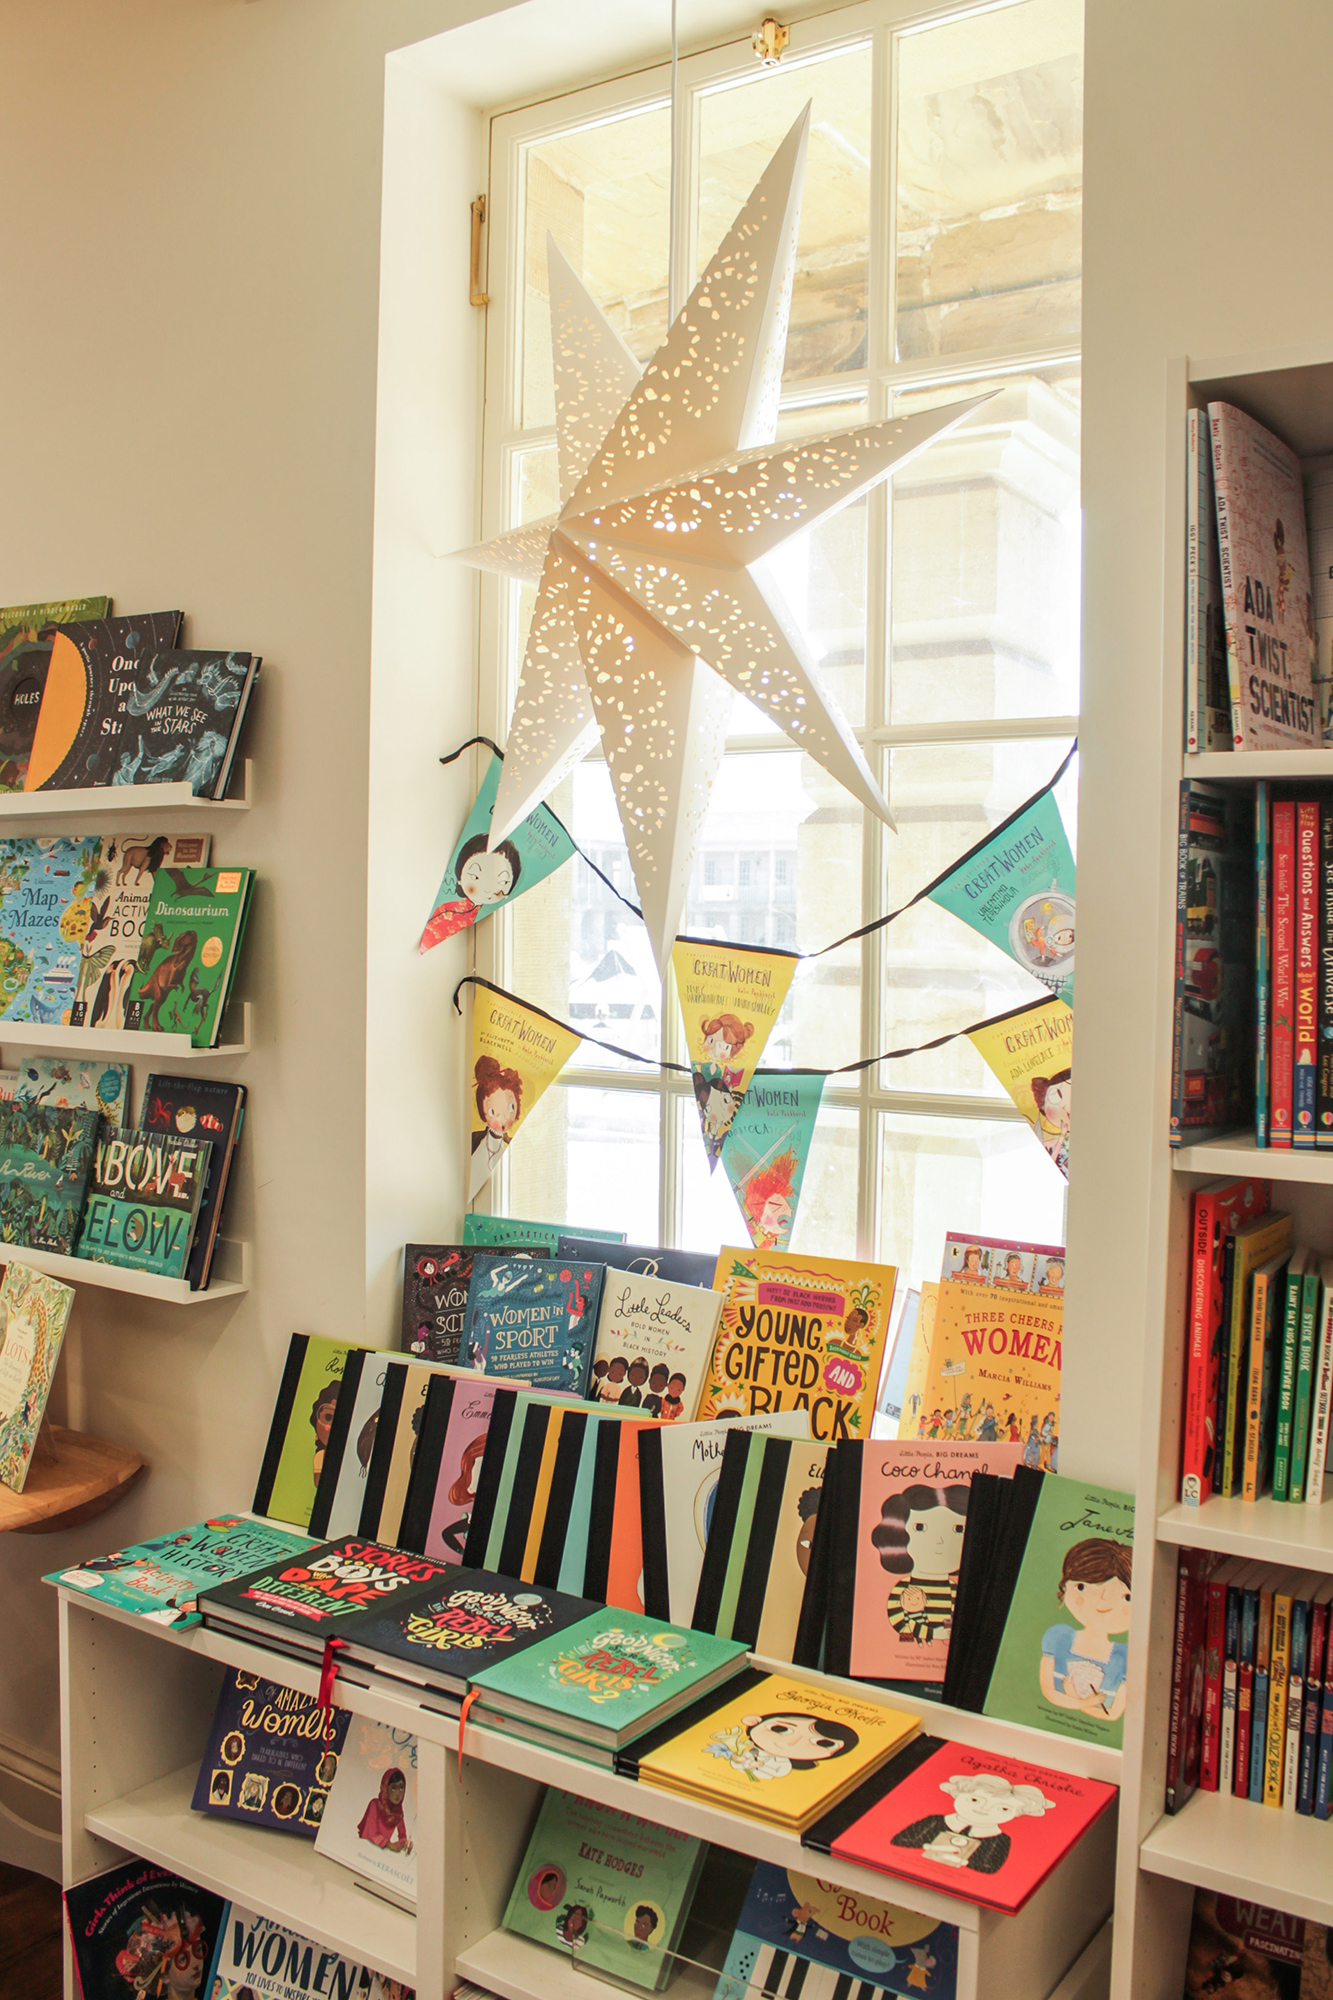 Buttercrumble-The-Book-Corner-Own-Photography-8-web.jpg